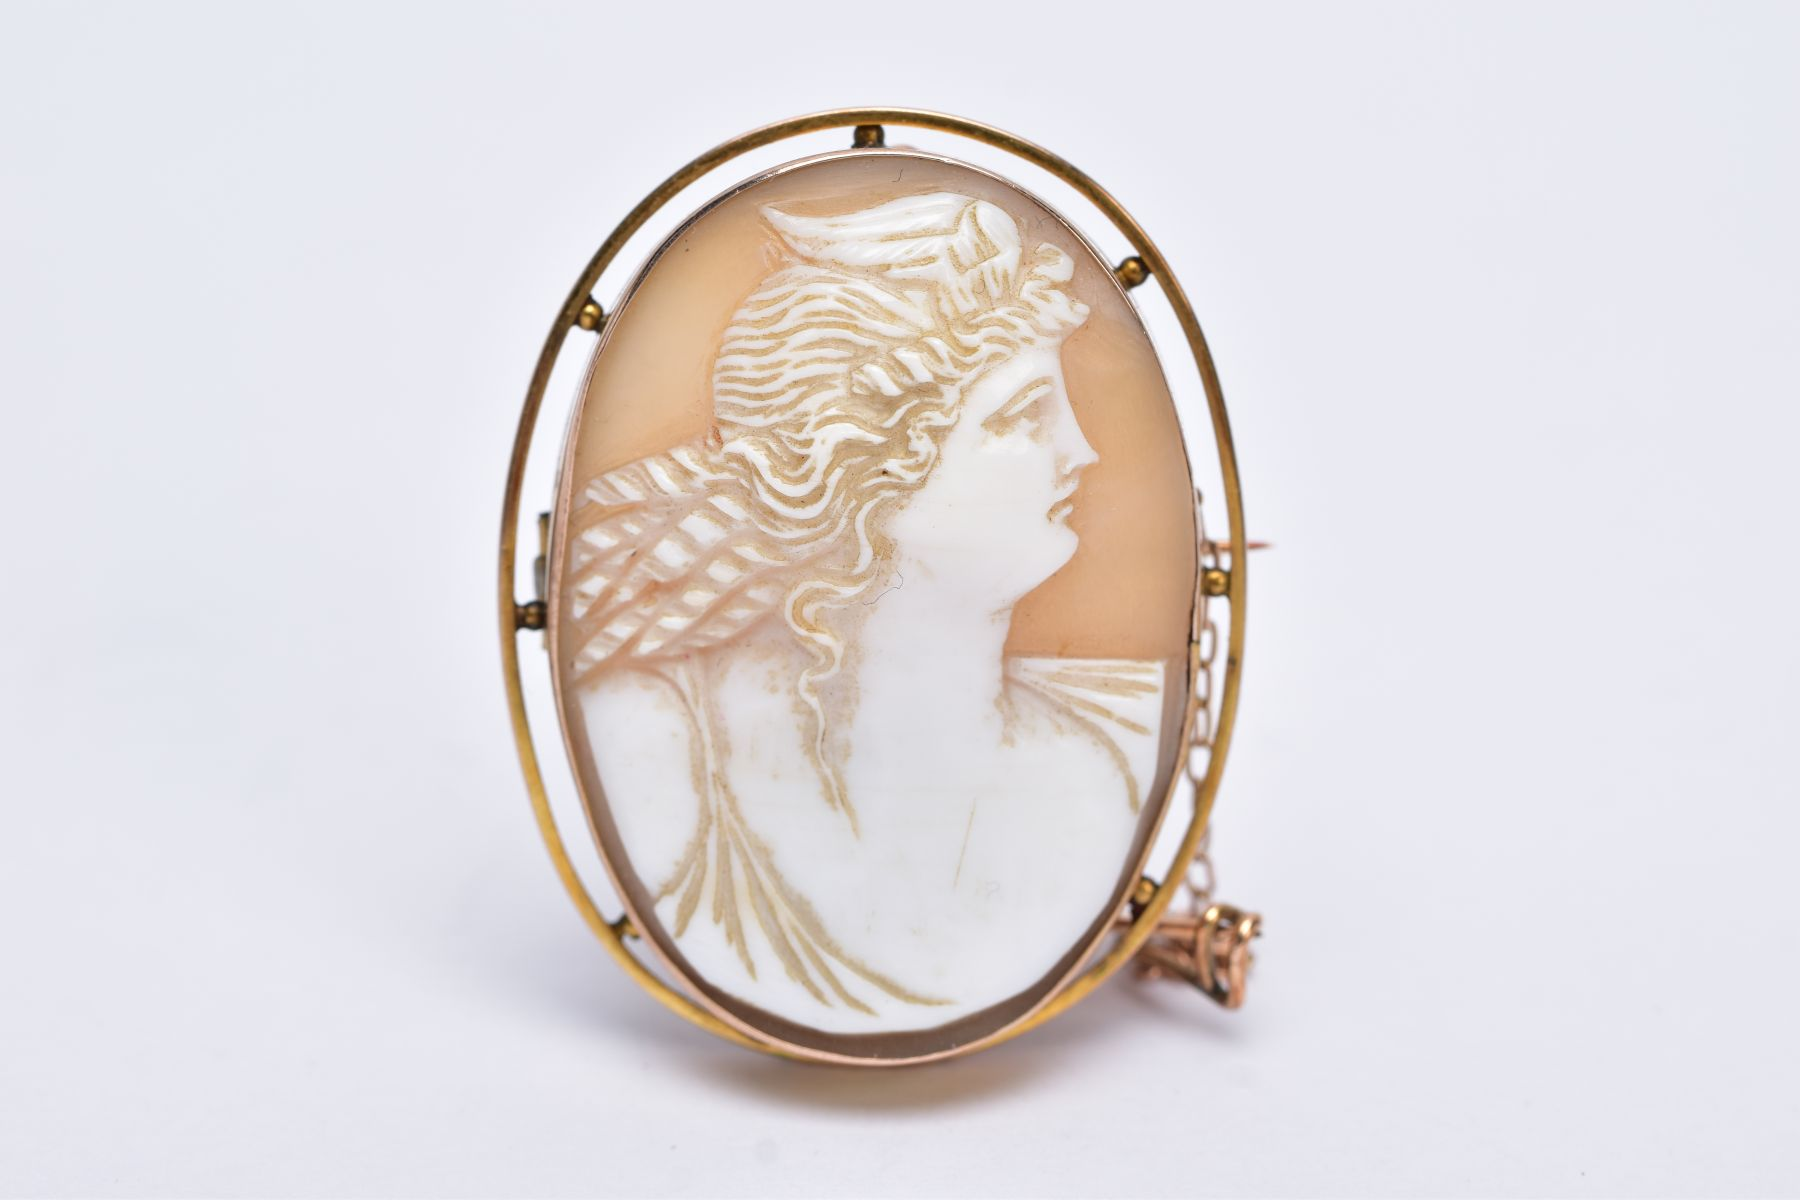 A GOLD CAMEO BROOCH, depicting a maiden in profile, measuring approximately 42mm x 33mm, stamped ' - Image 2 of 4